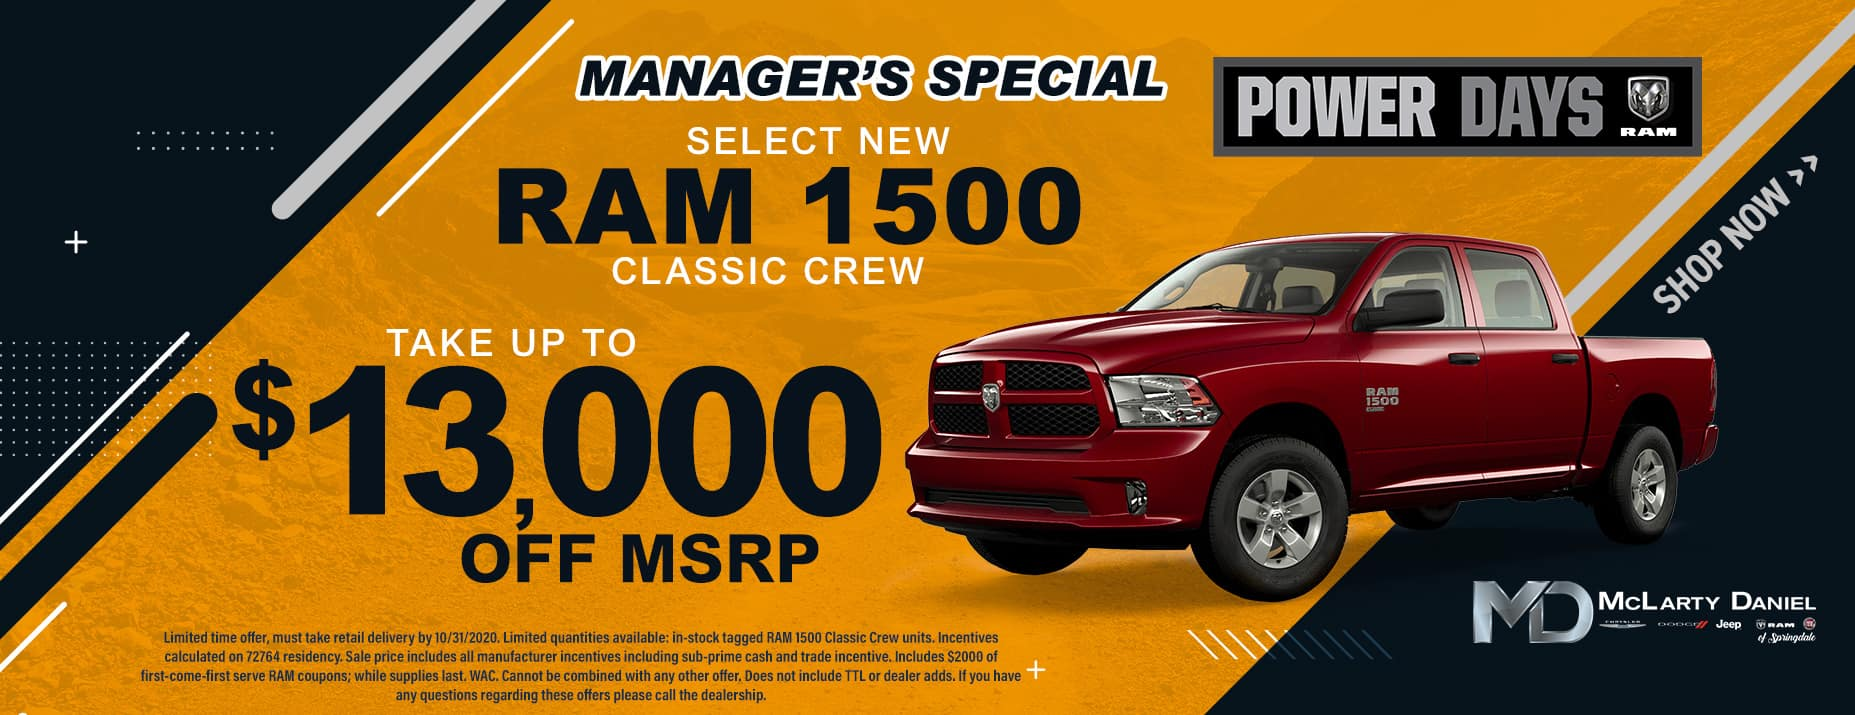 MANAGER'S SPECIAL: TAKE UP TO $13,000 OFF SELECT RAM 1500 CLASSIC CREW!